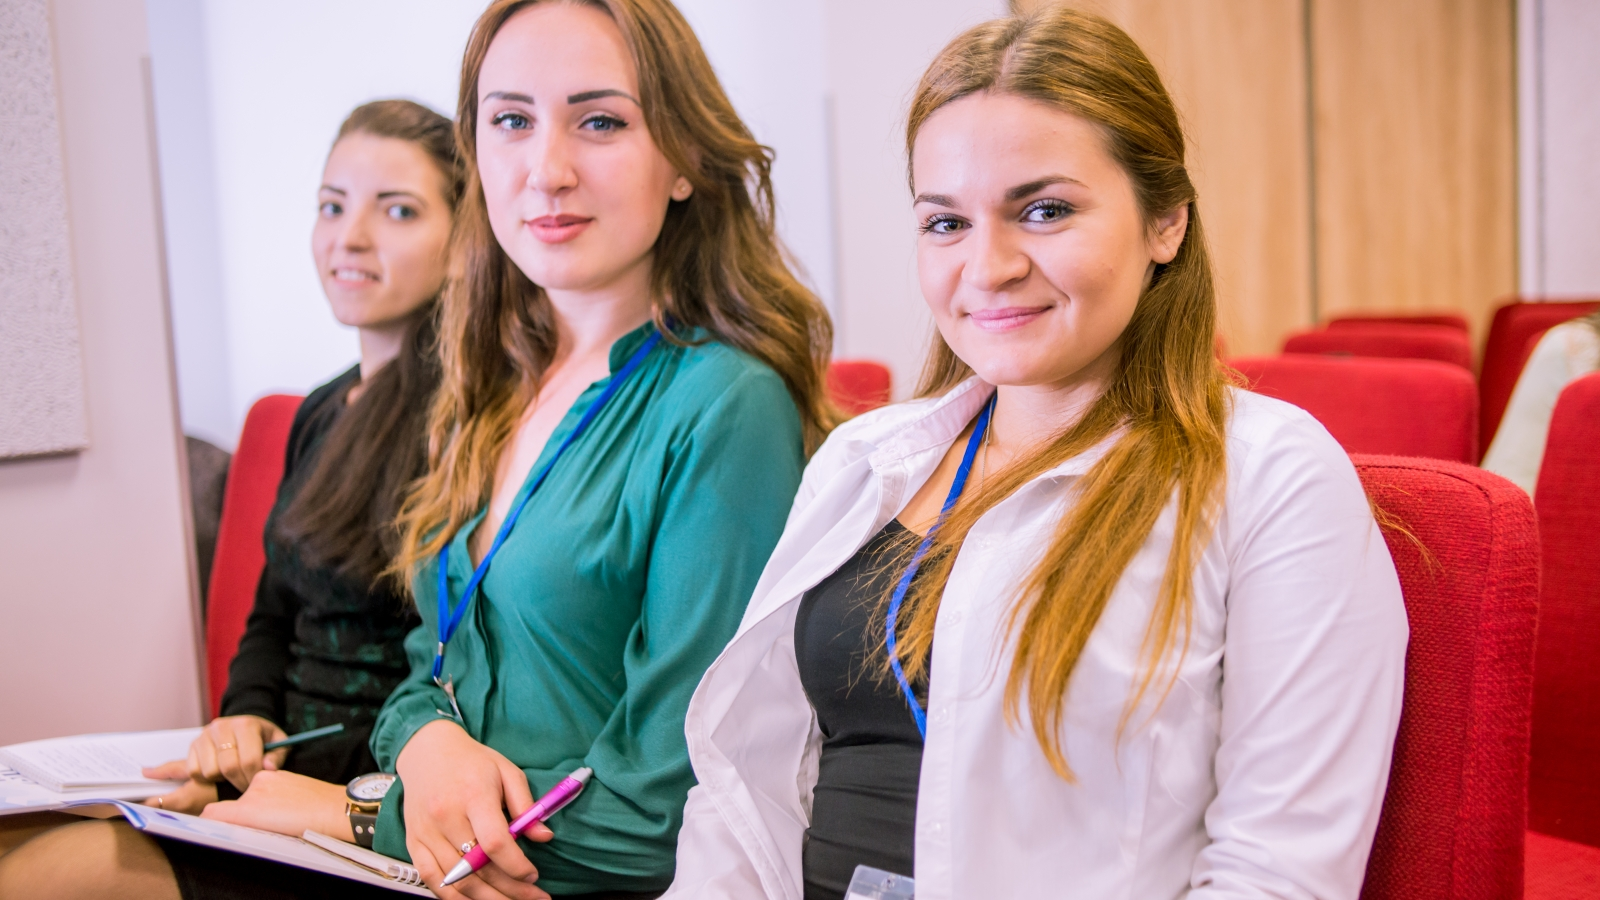 Chatham Home Robert Bosch Stiftung Academy Fellowship 2019 for Russia and Eurasia